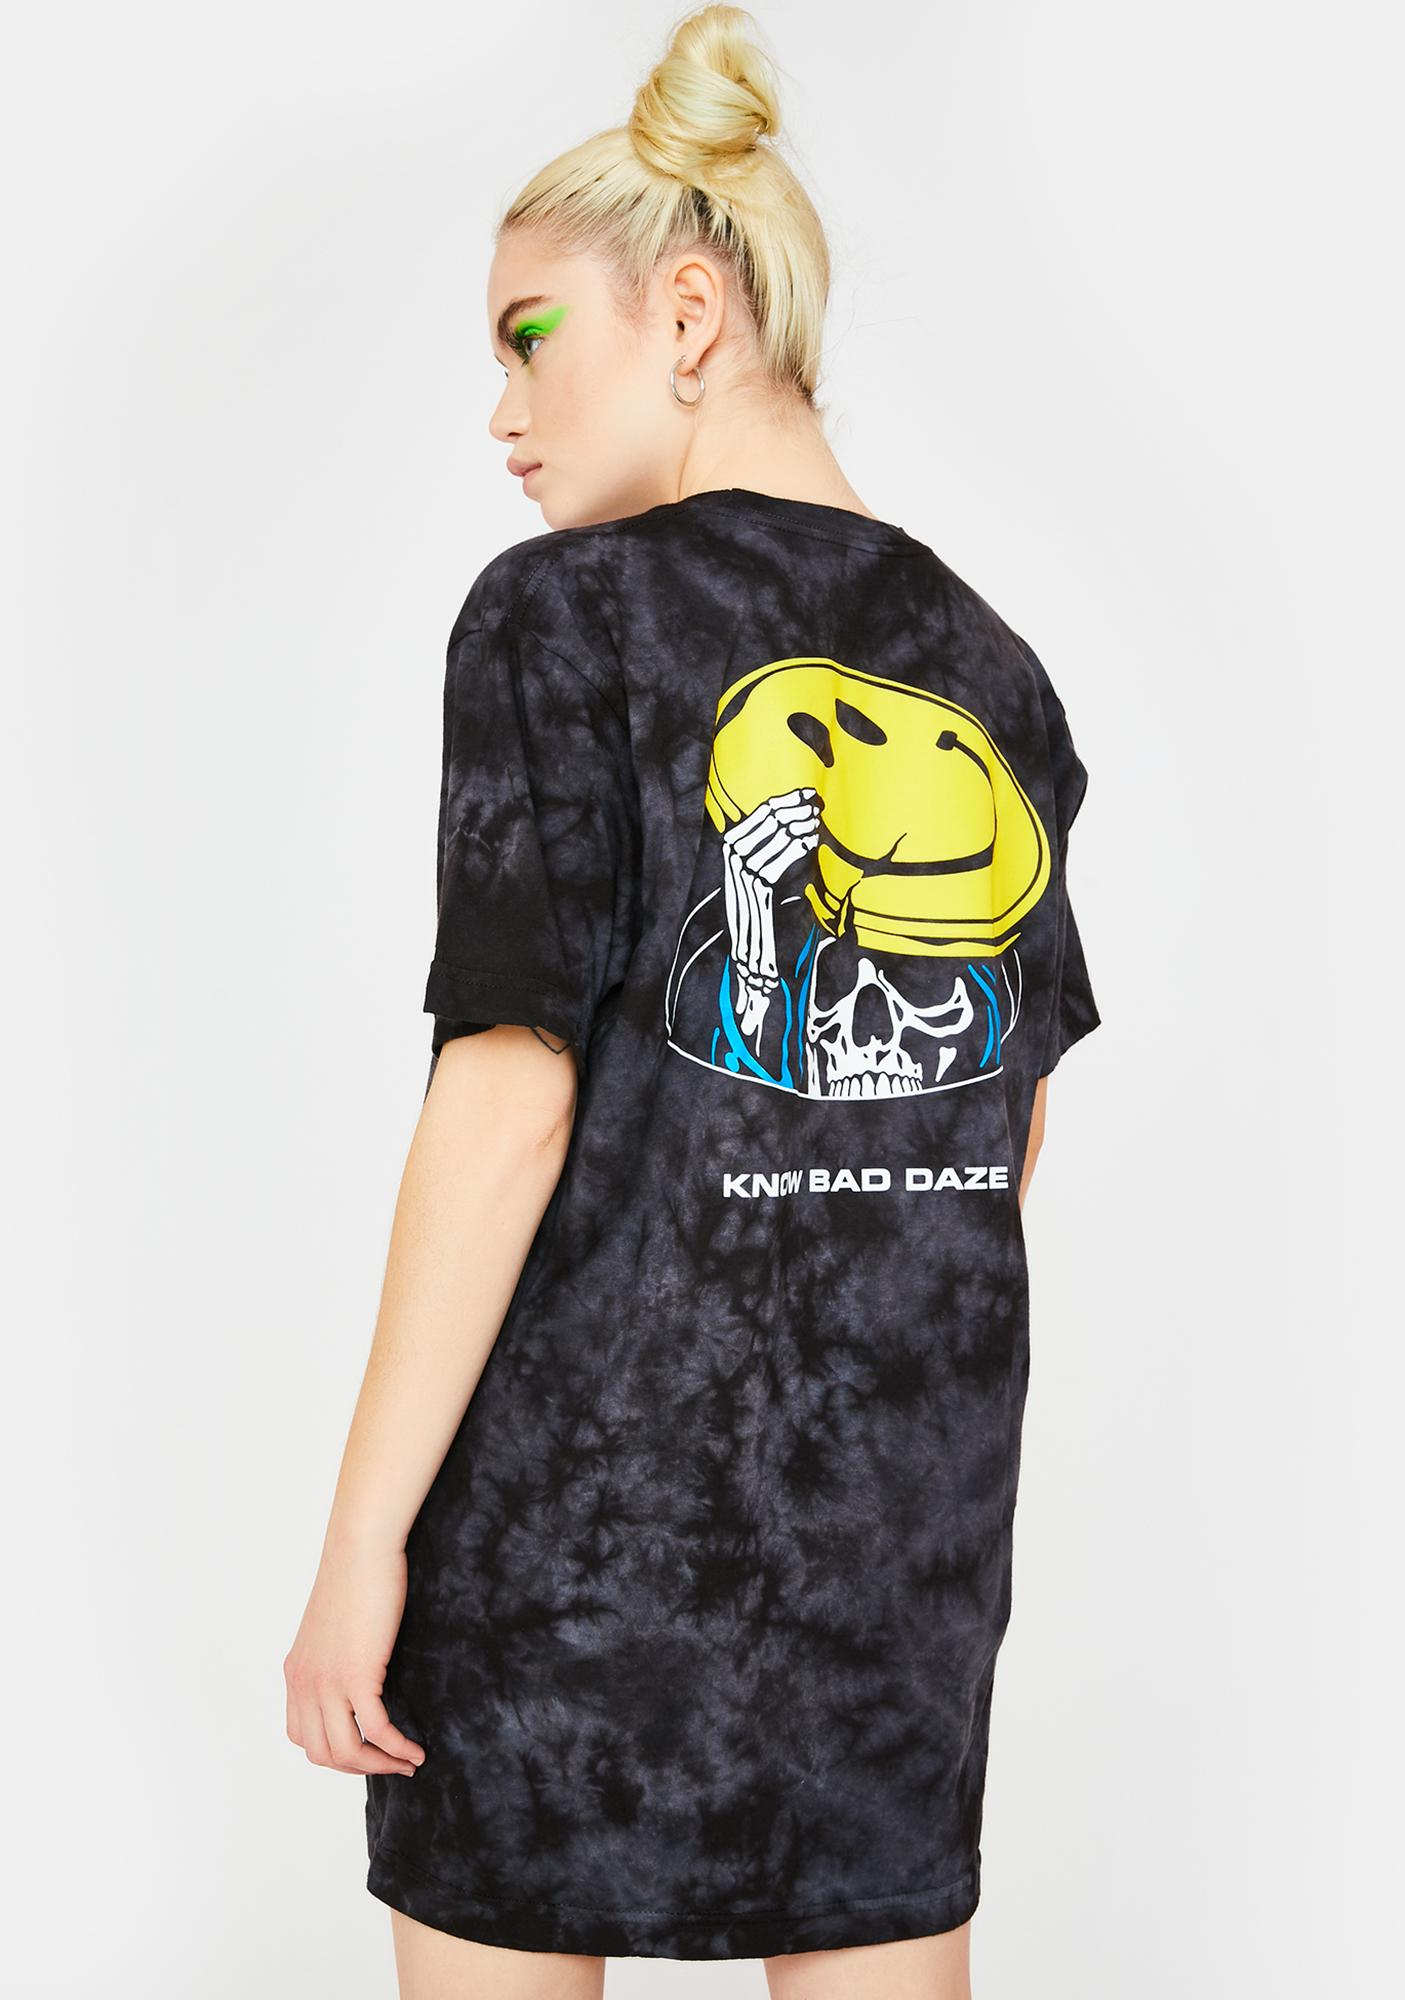 Know Bad Daze Here's Johnny Graphic Tee